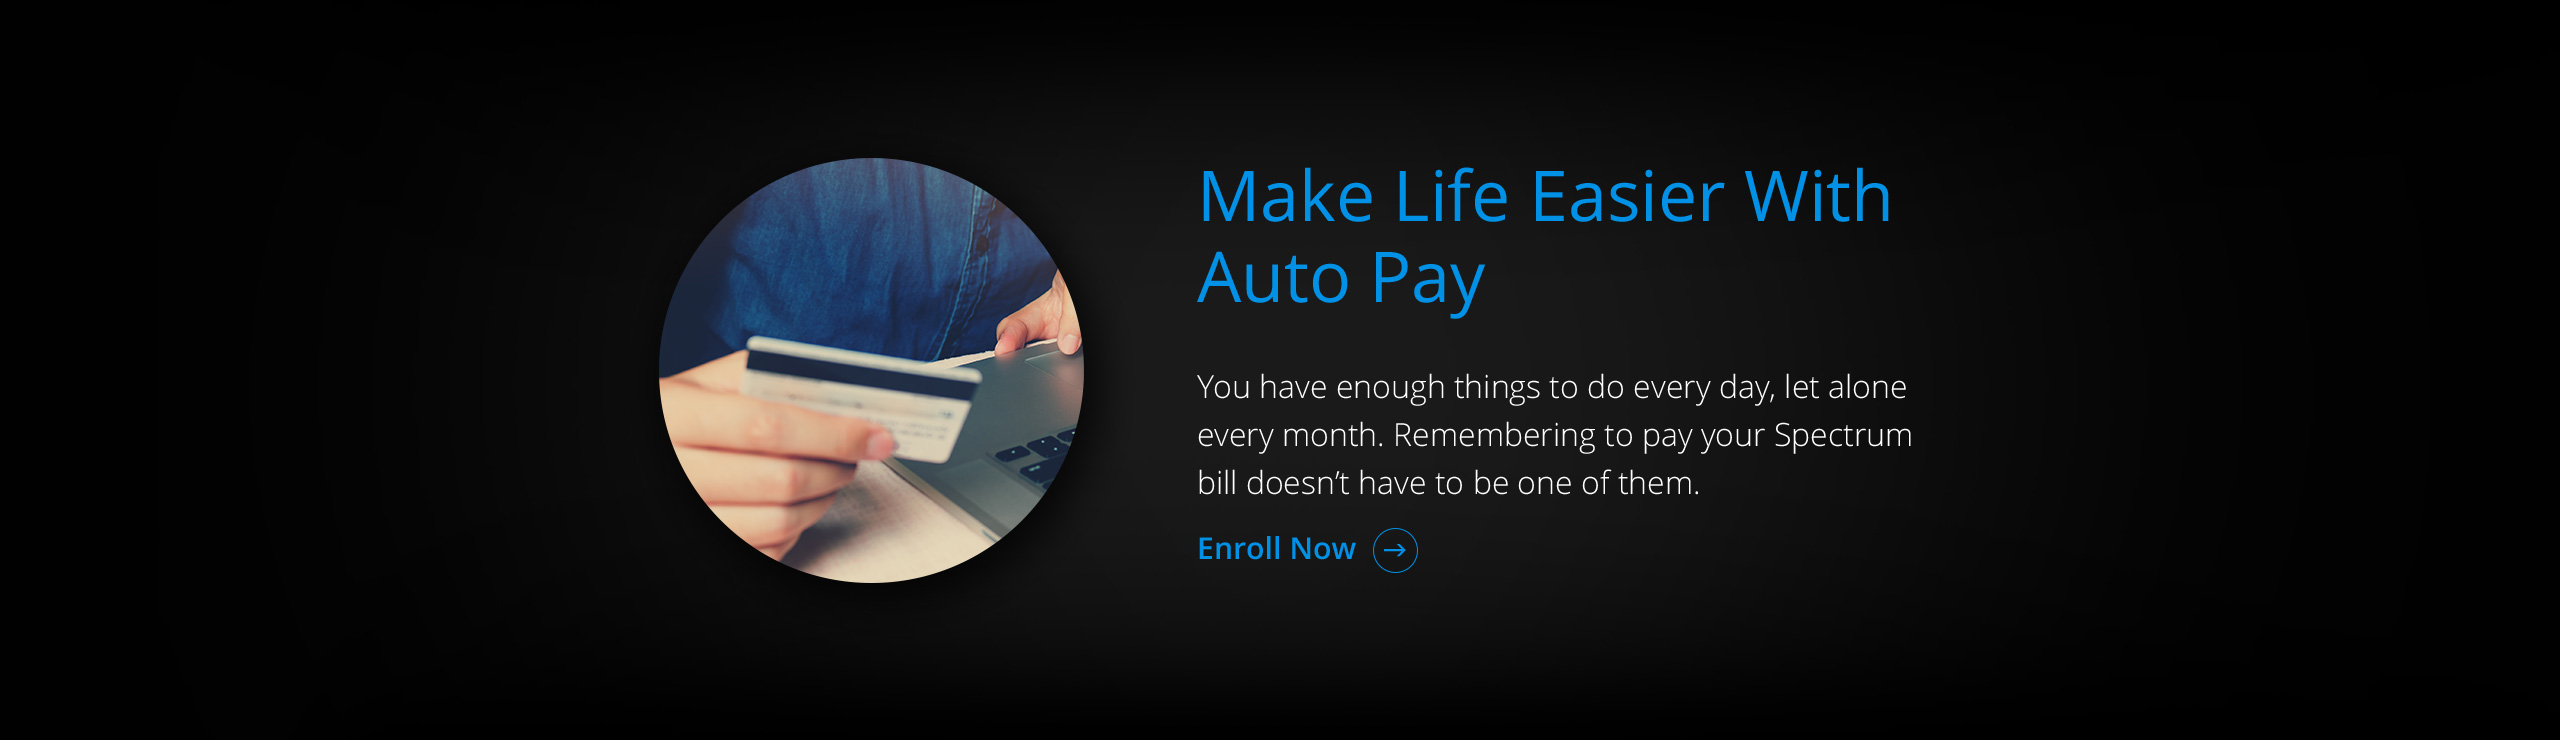 Make Your Life Easier With Auto Pay! Click Now!